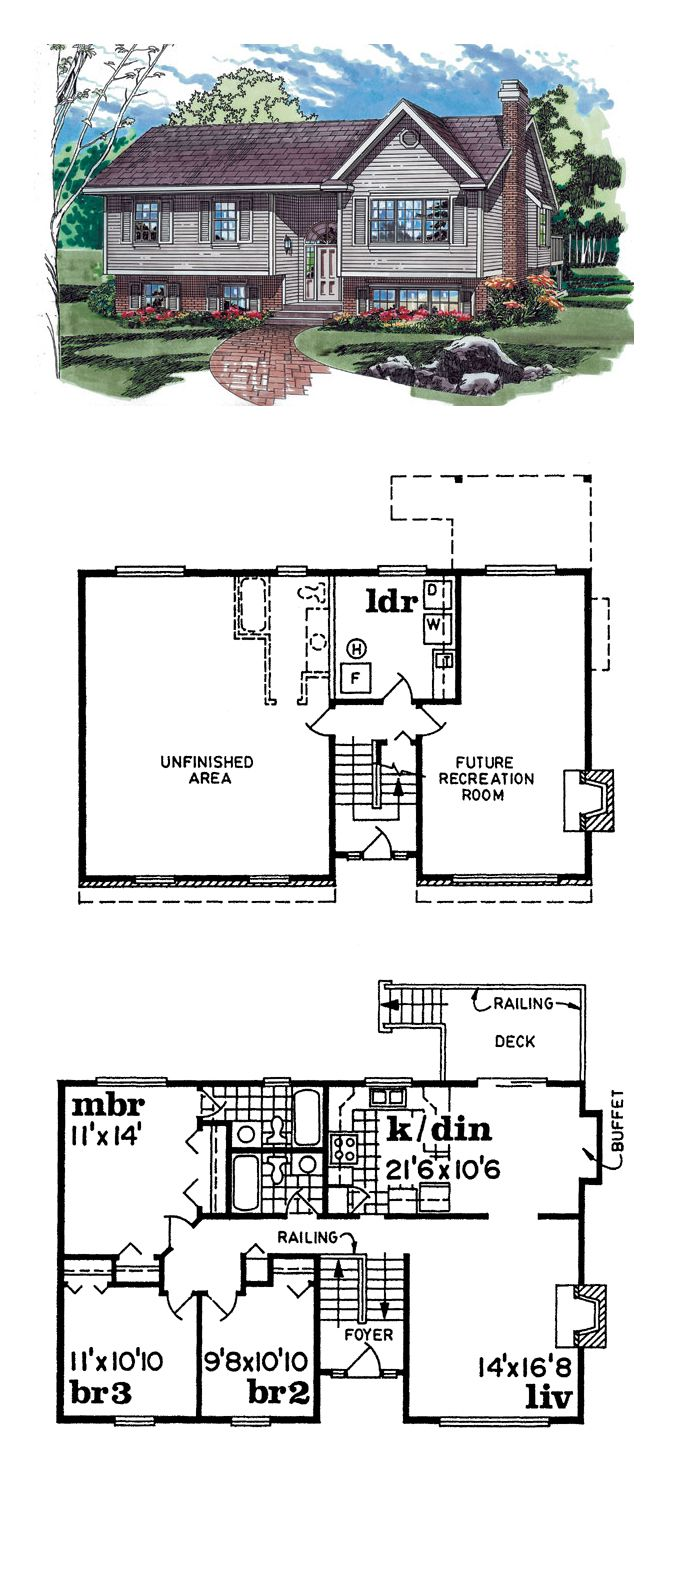 16 best images about saltbox house plans on pinterest for Saltbox style house plans